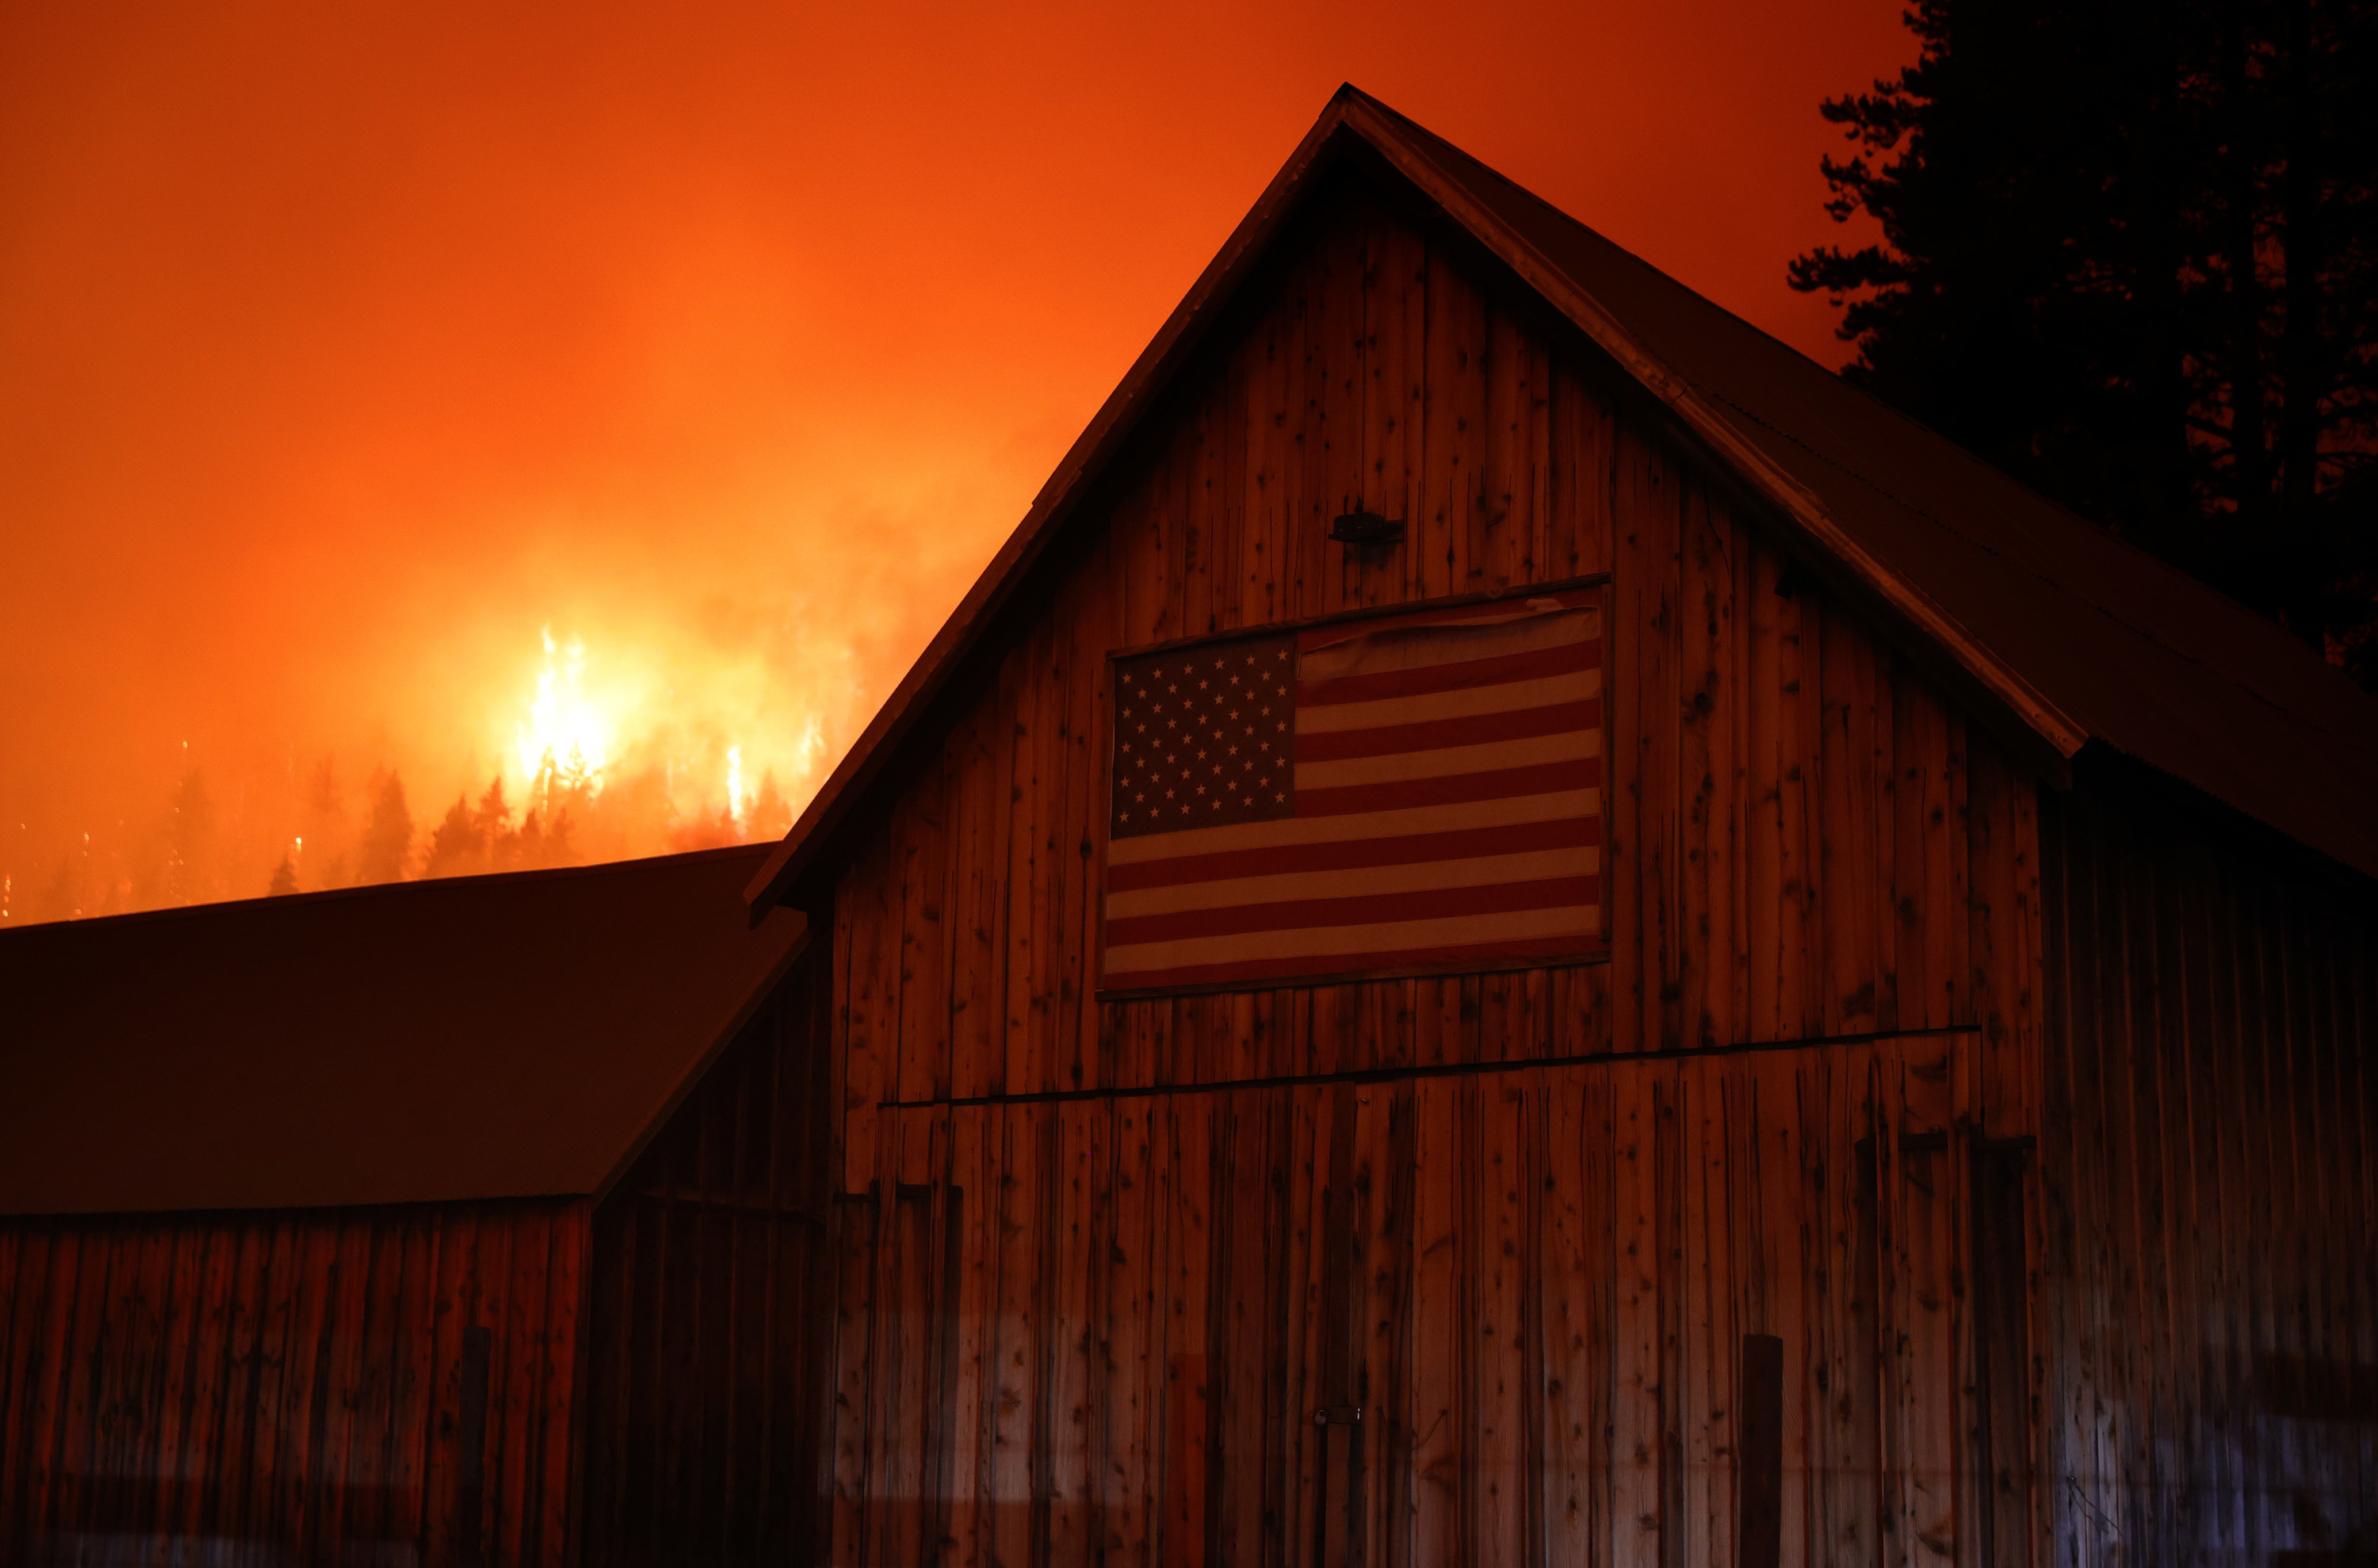 A fire blazes on a hillside in the background behind a barn with a US flag on the side